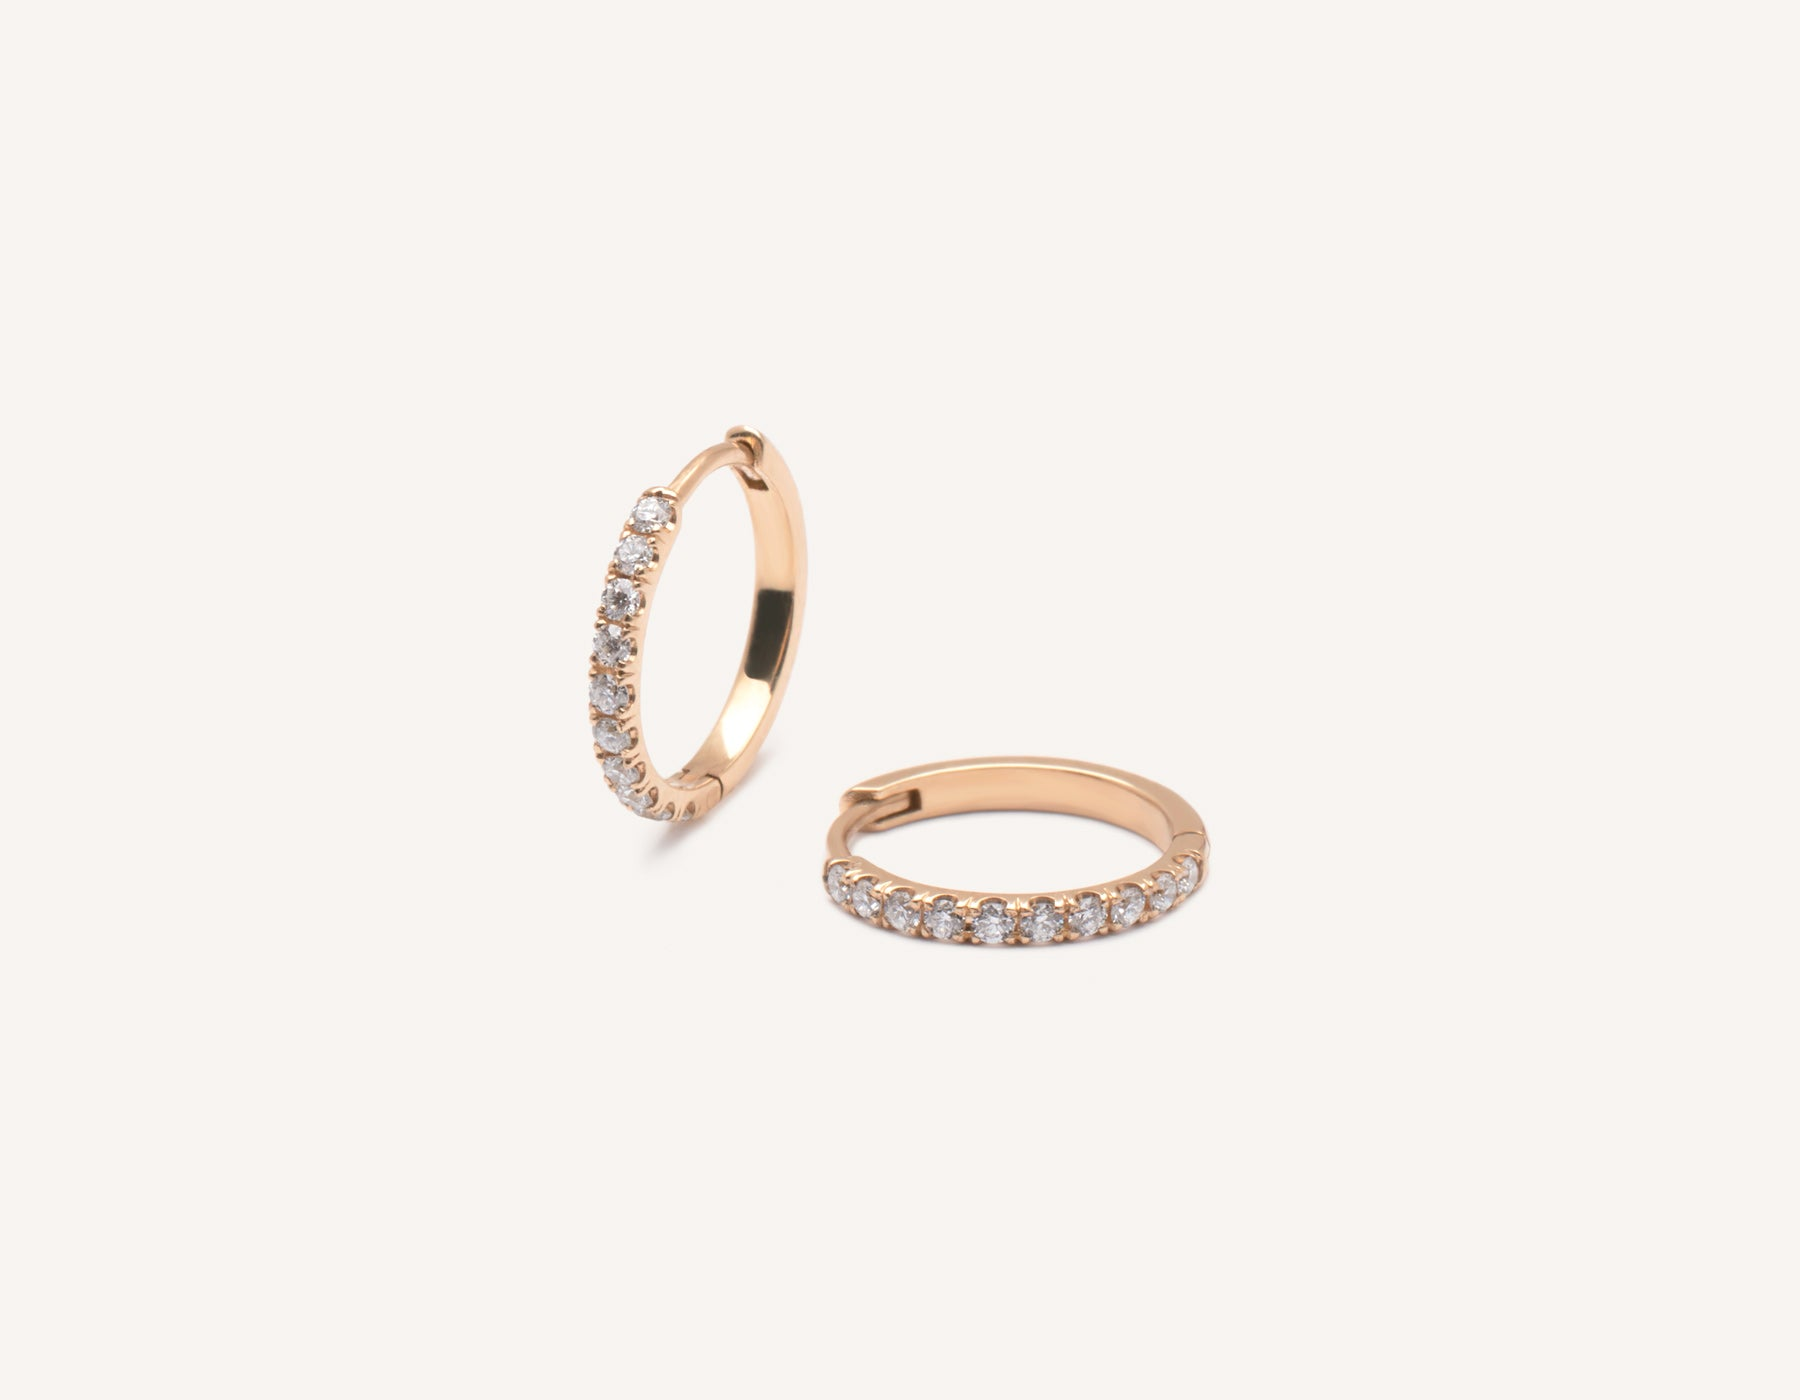 Simple classic 14k solid gold Medium Pave Diamond Huggie Hoops Earrings Vrai and Oro, 14K Rose Gold